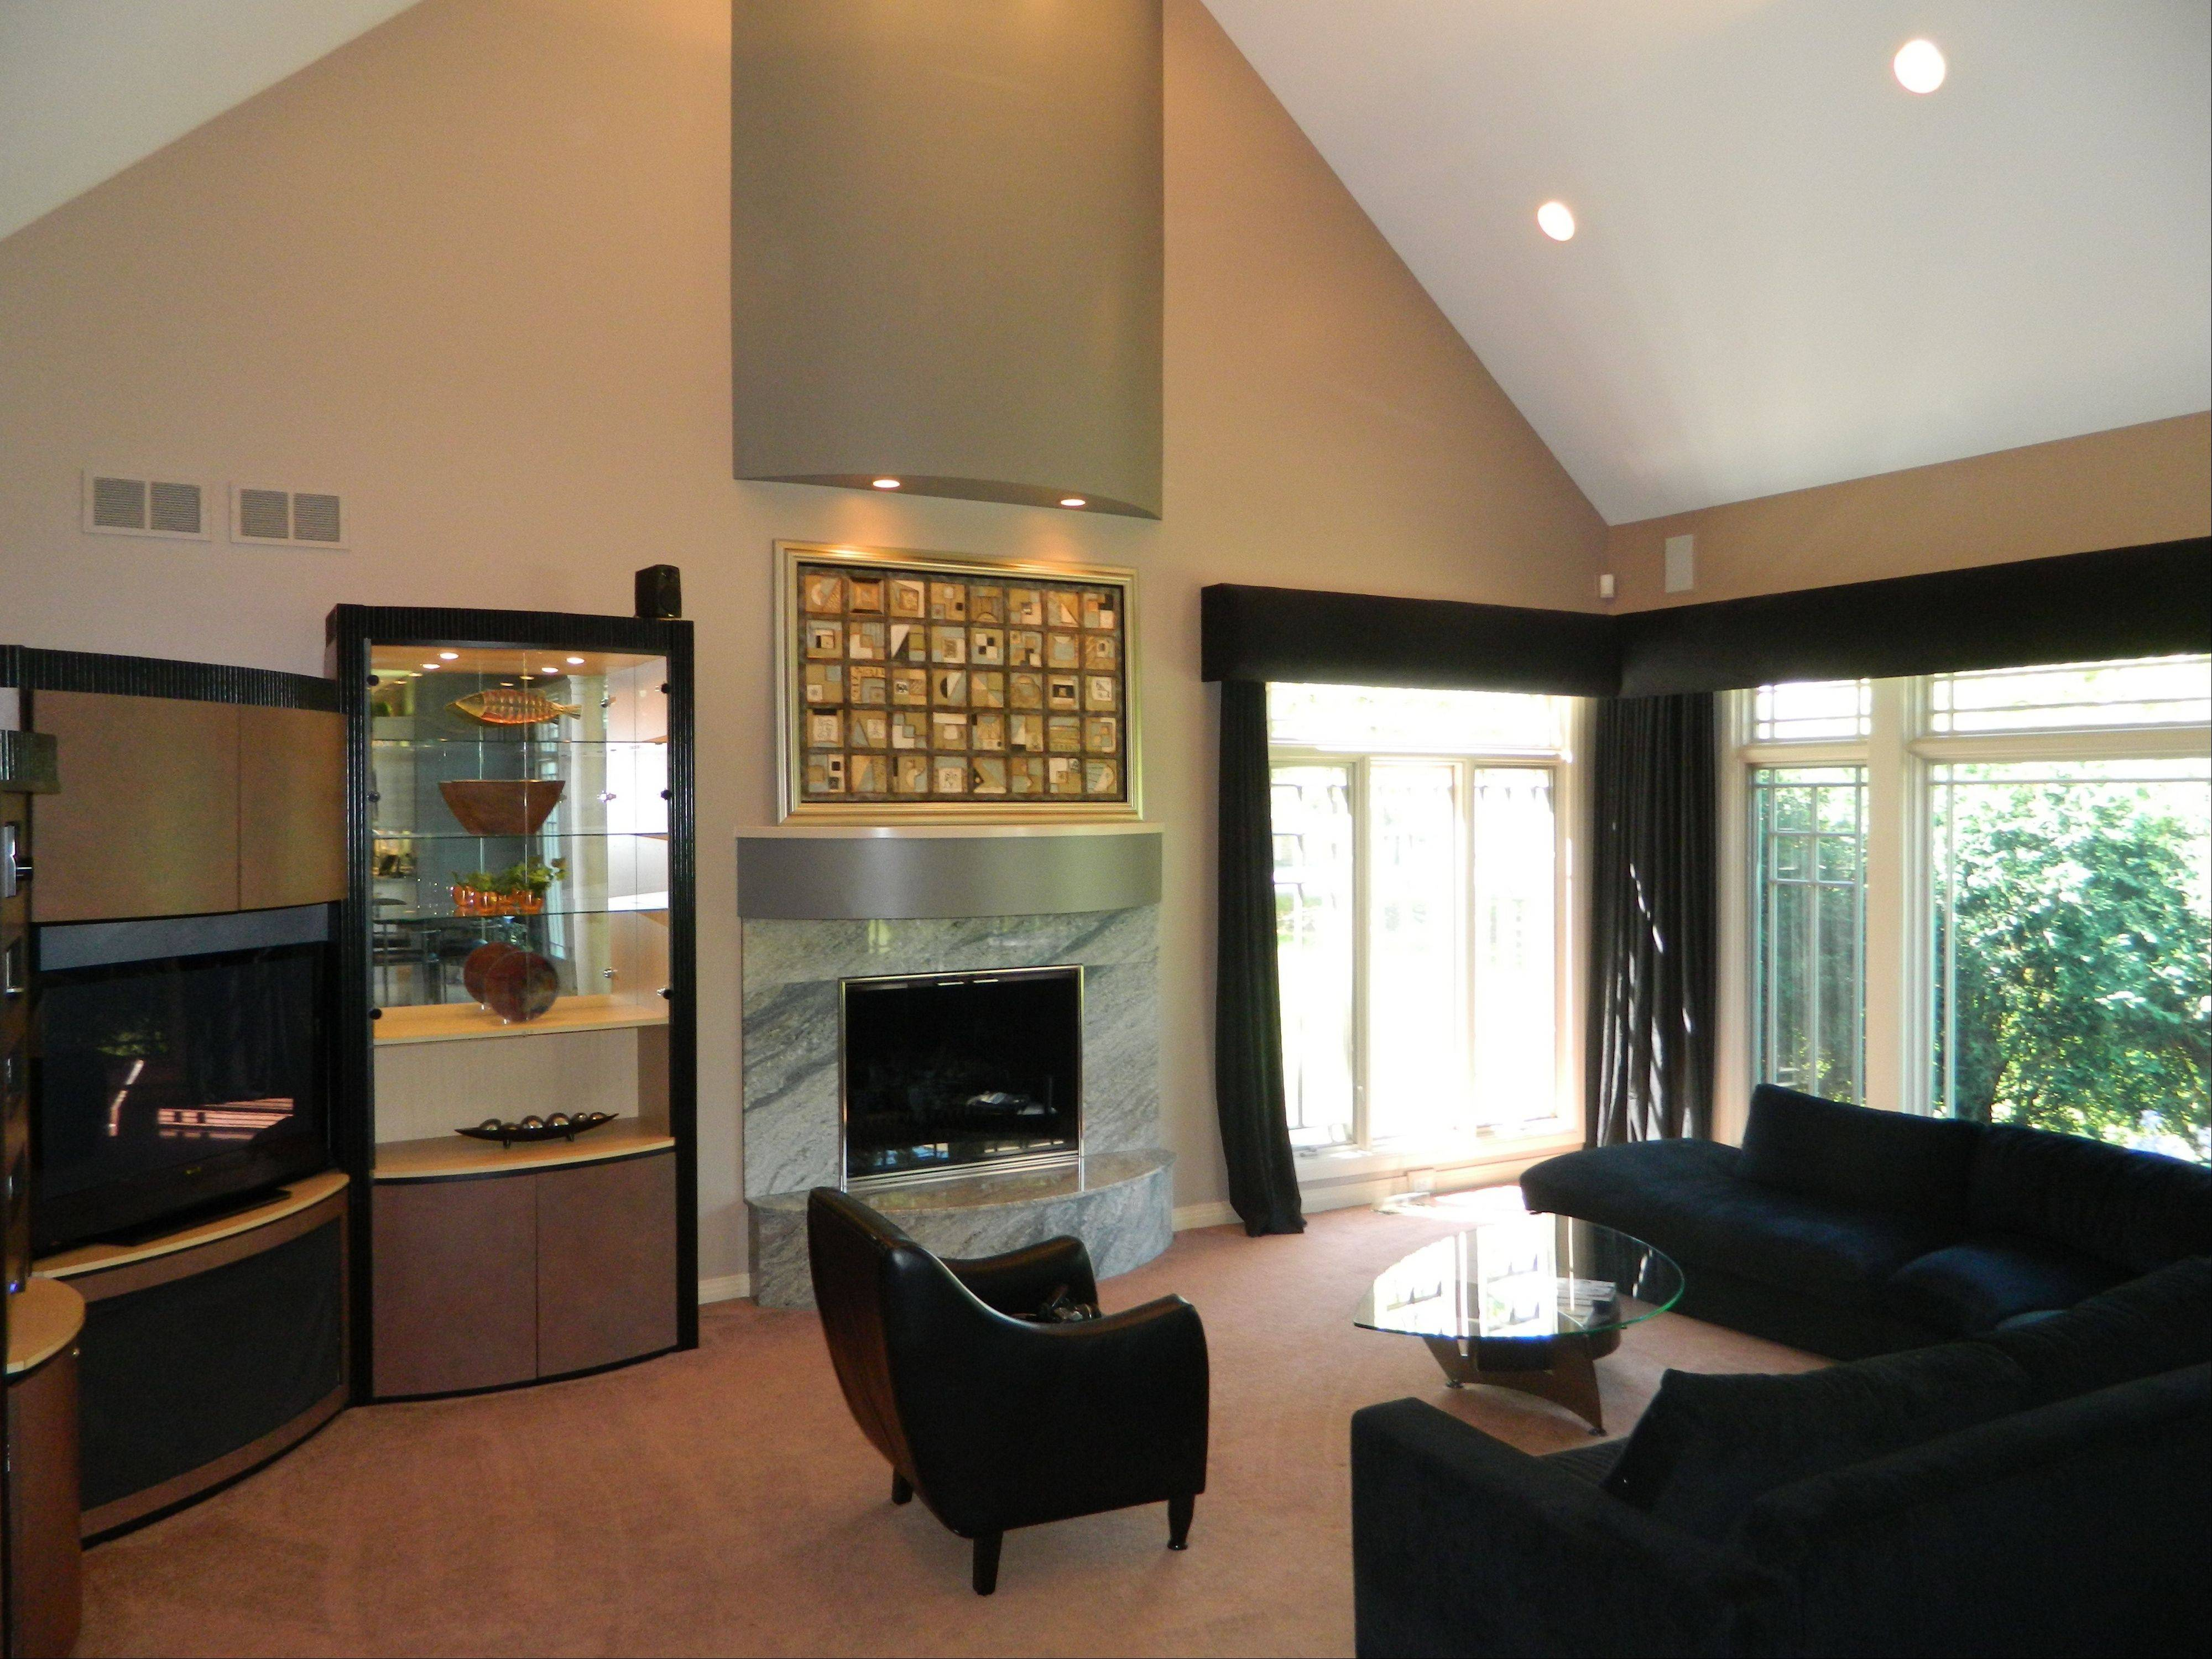 Vaulted ceilings add to the large dimensions of the living room.